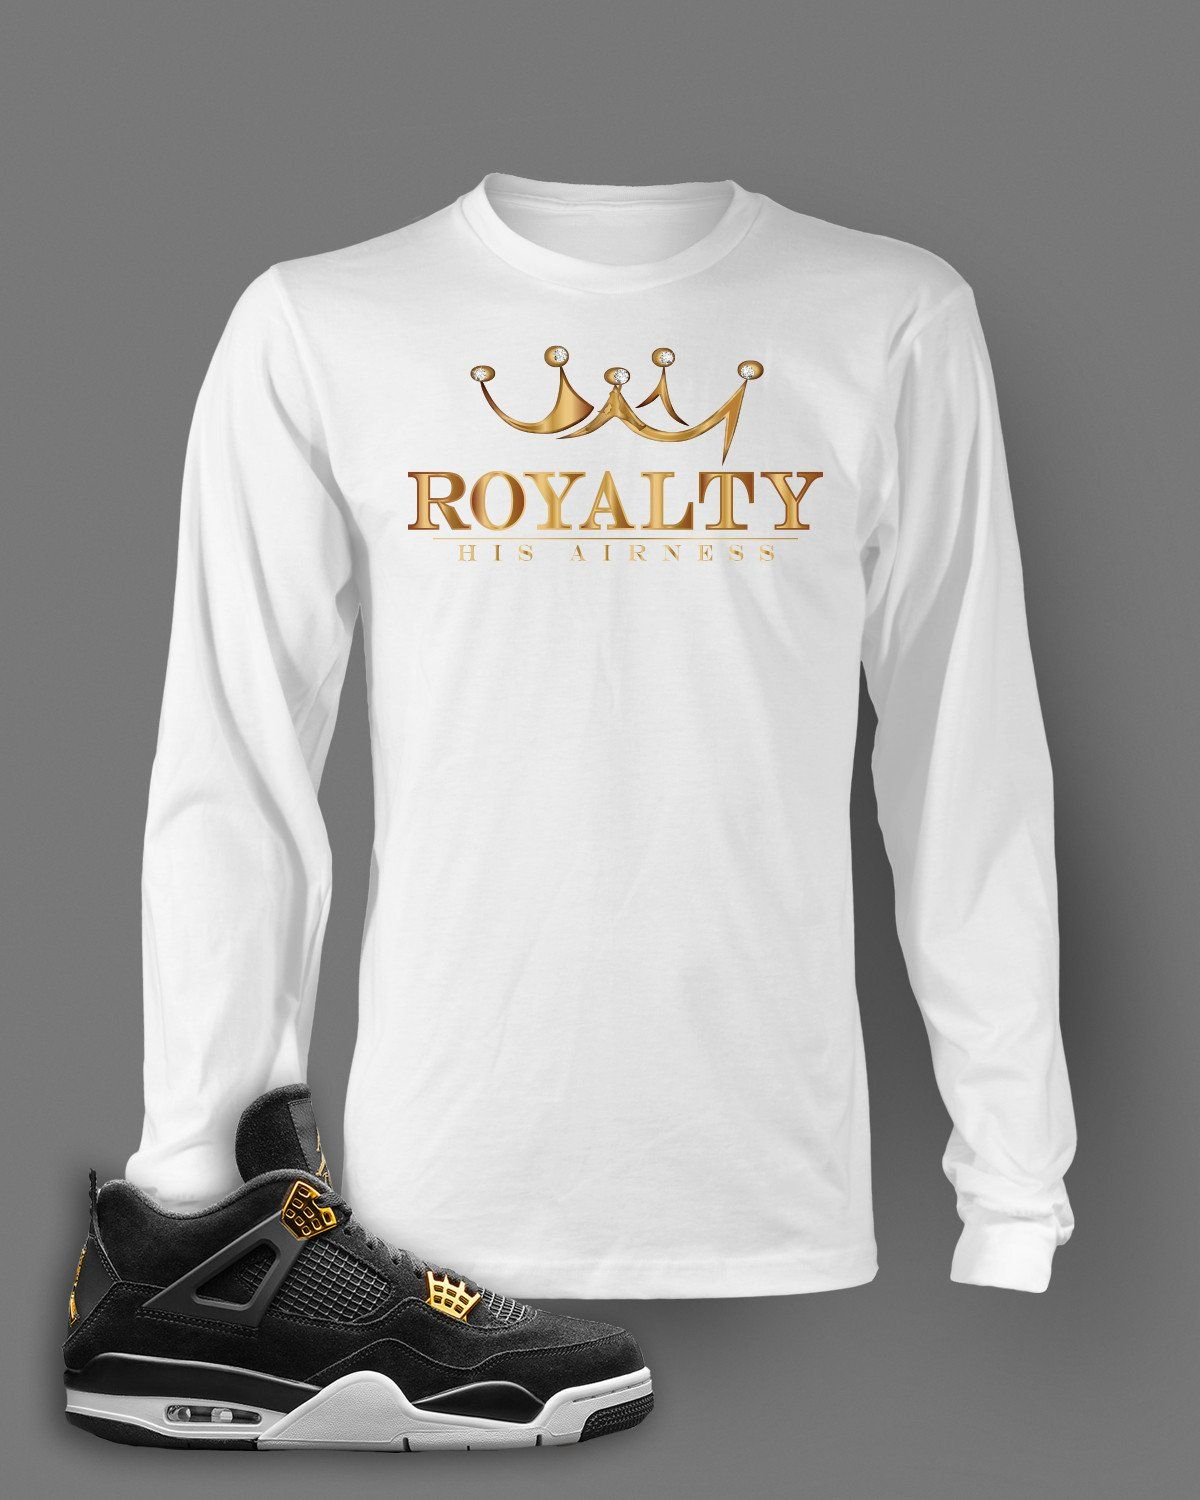 1e00d93297ea Long Sleeve T Shirt To Match Retro Air Jordan 4 Royalty Shoe Custom Mens Tee  Design S M L XL XL-Tall 2XL 2XL-Tall 3XL 3XL-Tall LENGTH 28